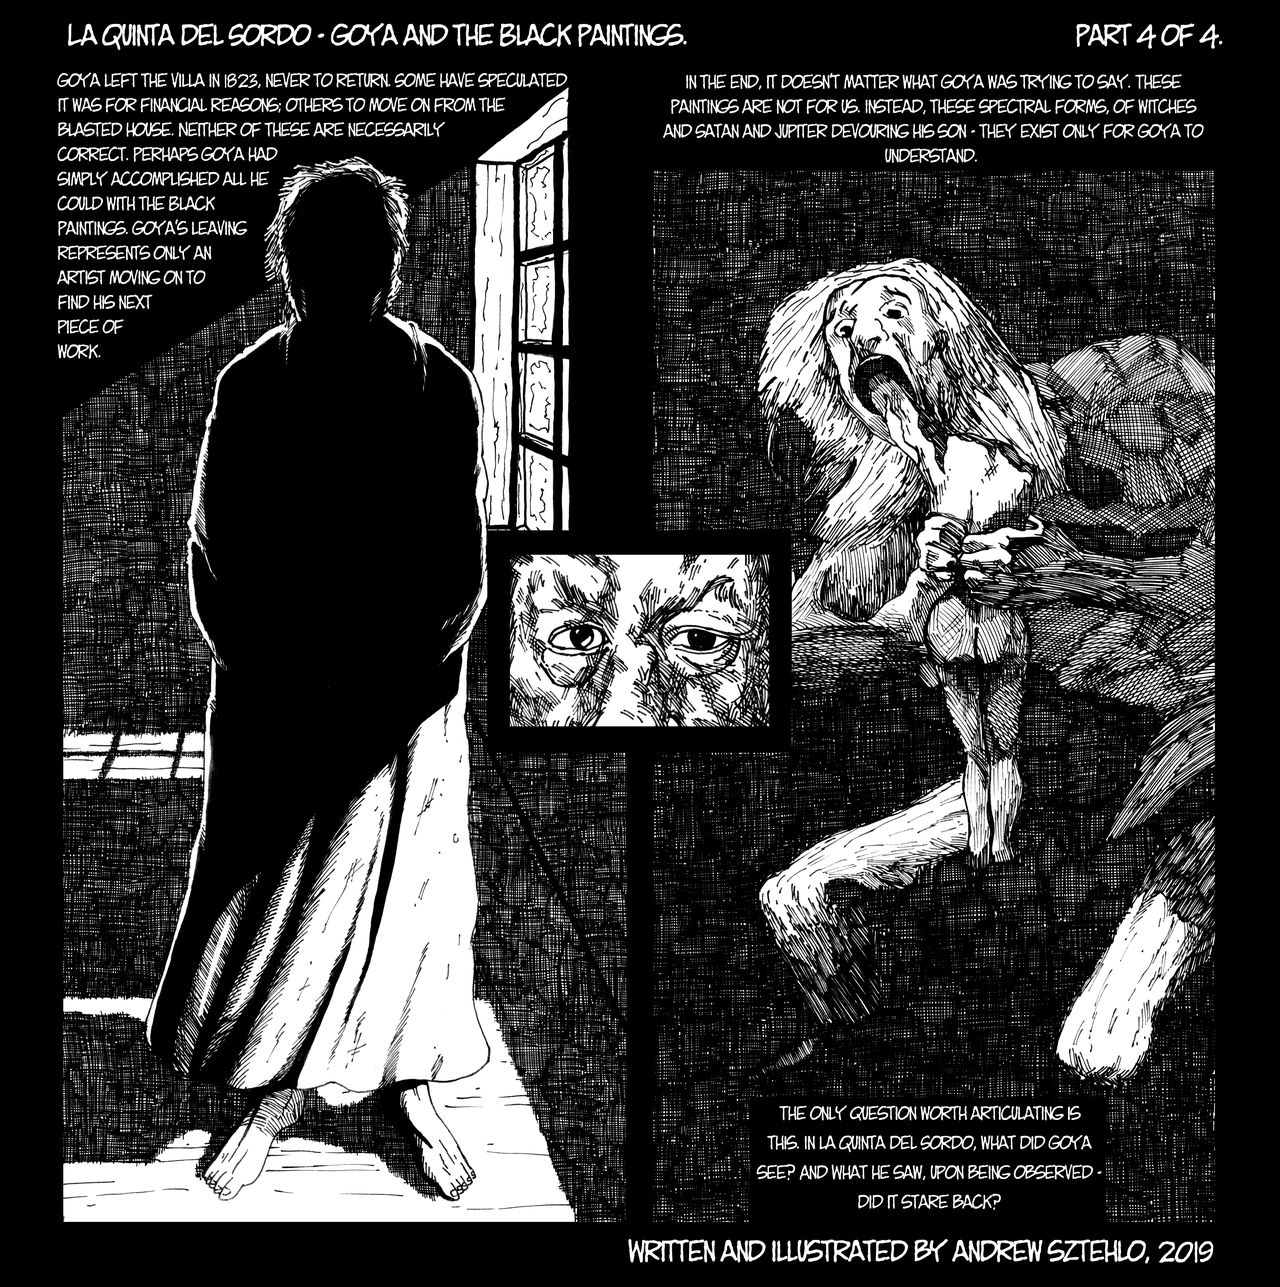 "Black and white line drawing. Webcomic in a square format with a few panels arranged around a central pair of glaring eyes. Half of the visuals depict an older man wrapped in a cloak inside a dark house silhouetted against some light coming in through a window behind him. The other half shows a recreation of his piece ""Saturn Devouring His Son"". The words provoke thought about why Goya left that house, but in the end it doesn't matter, as they were painted for his eyes alone."